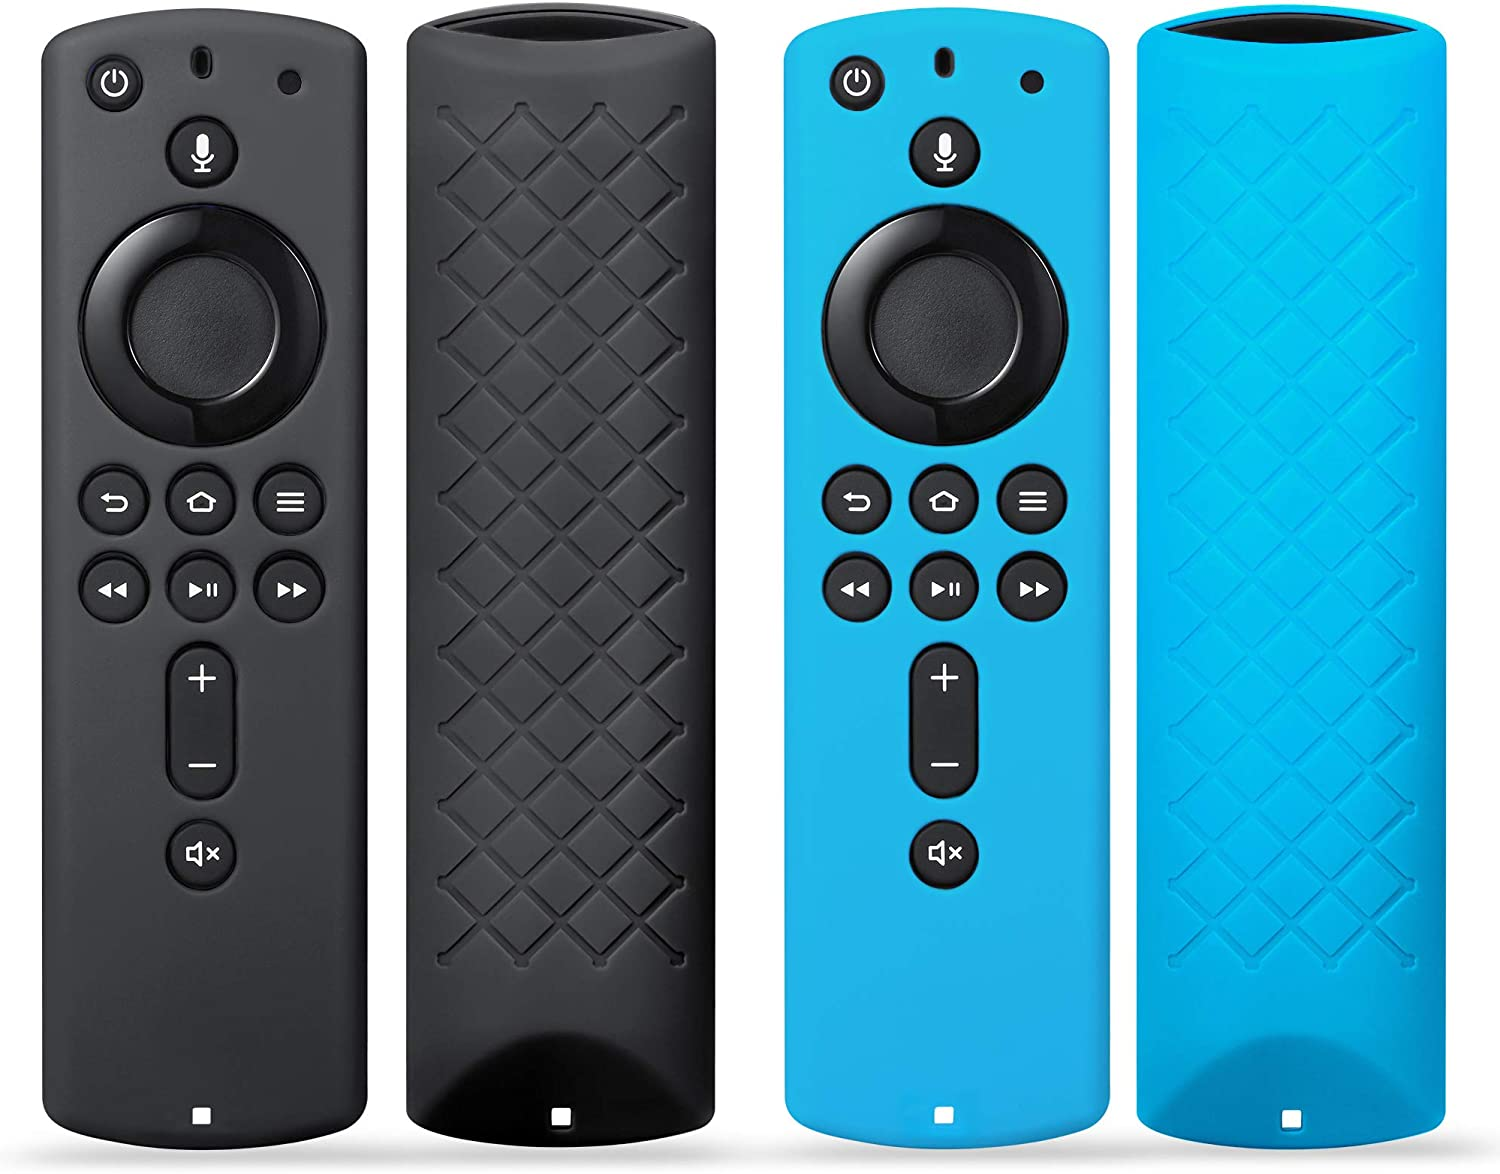 2Pack Remote Case Cover for Fir TV Stick 4K / Fir TV Cube/Fir TV (3rd Gen), SYMOTOP Anti Slip Silicone Remote Case Compatible with All-New 2nd Gen Alexa Voice Remote Control - Black Blue